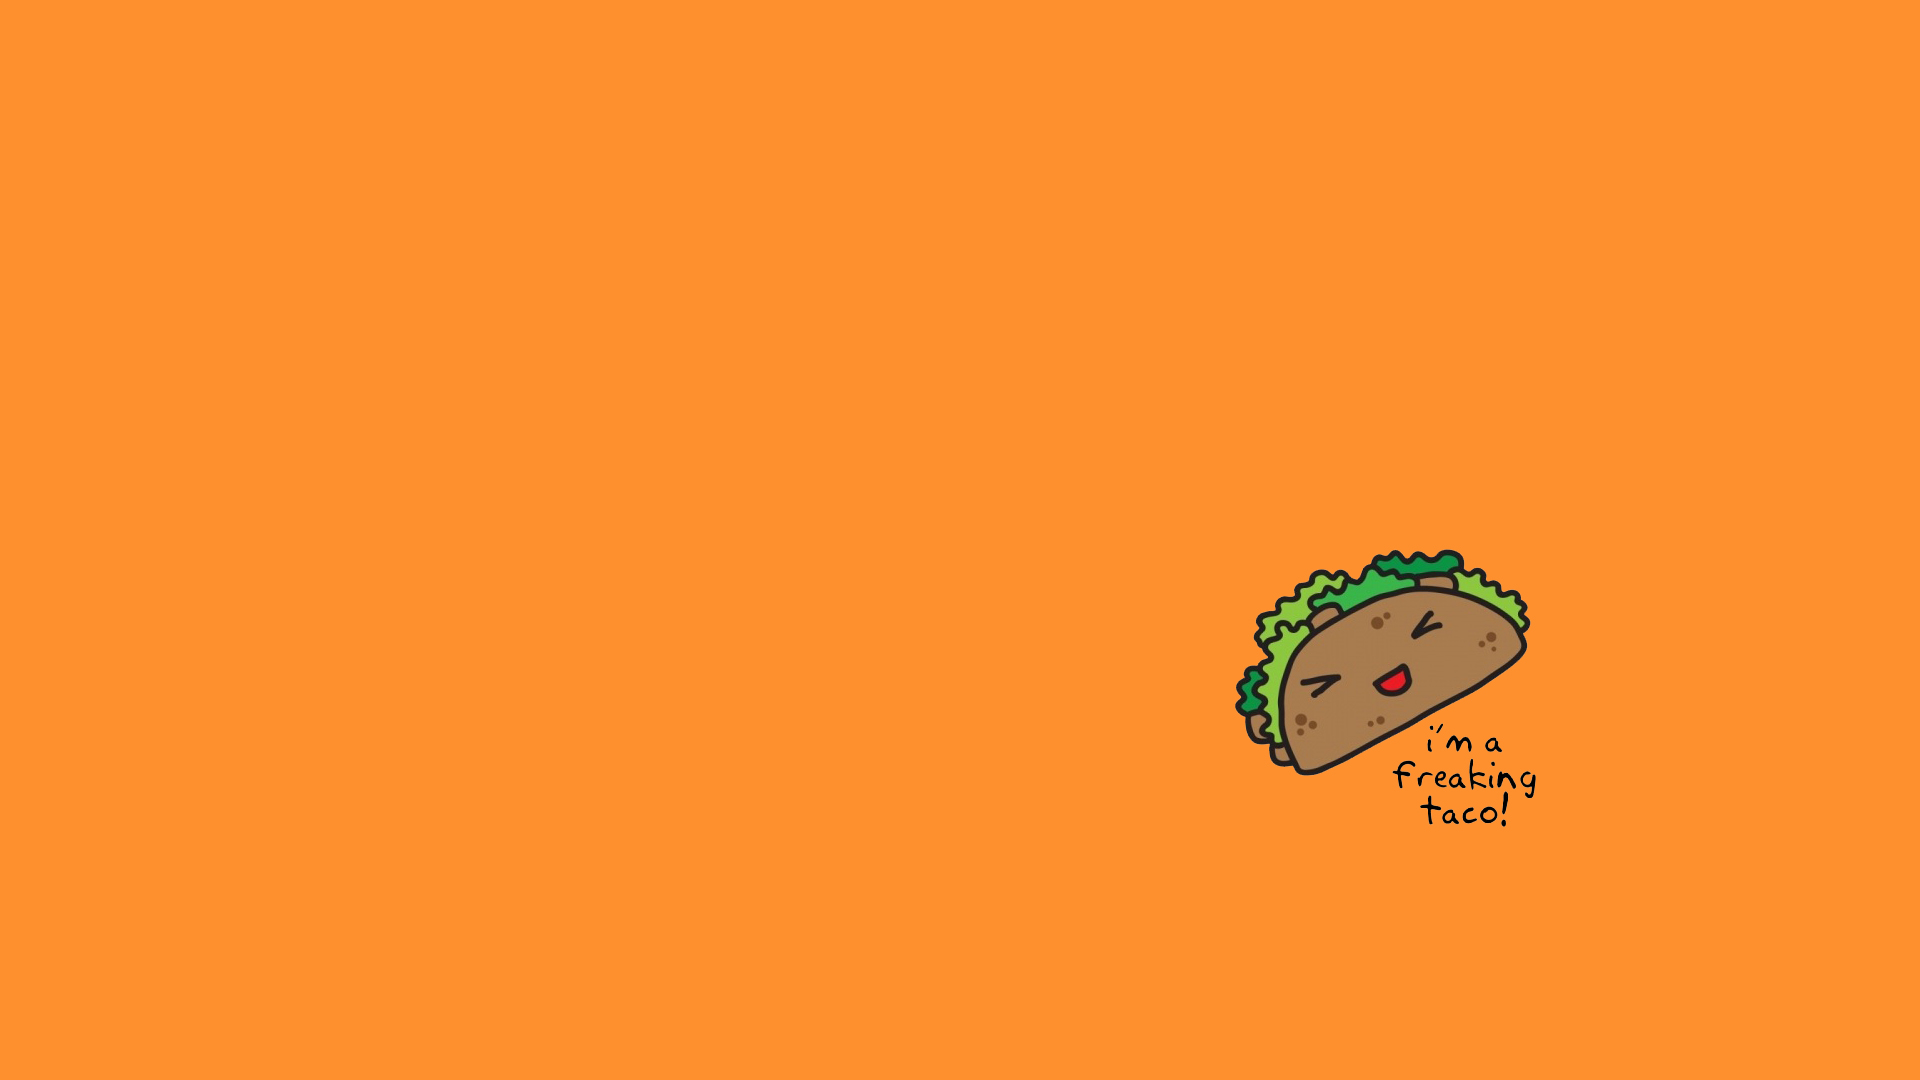 Tacos HD Wallpapers